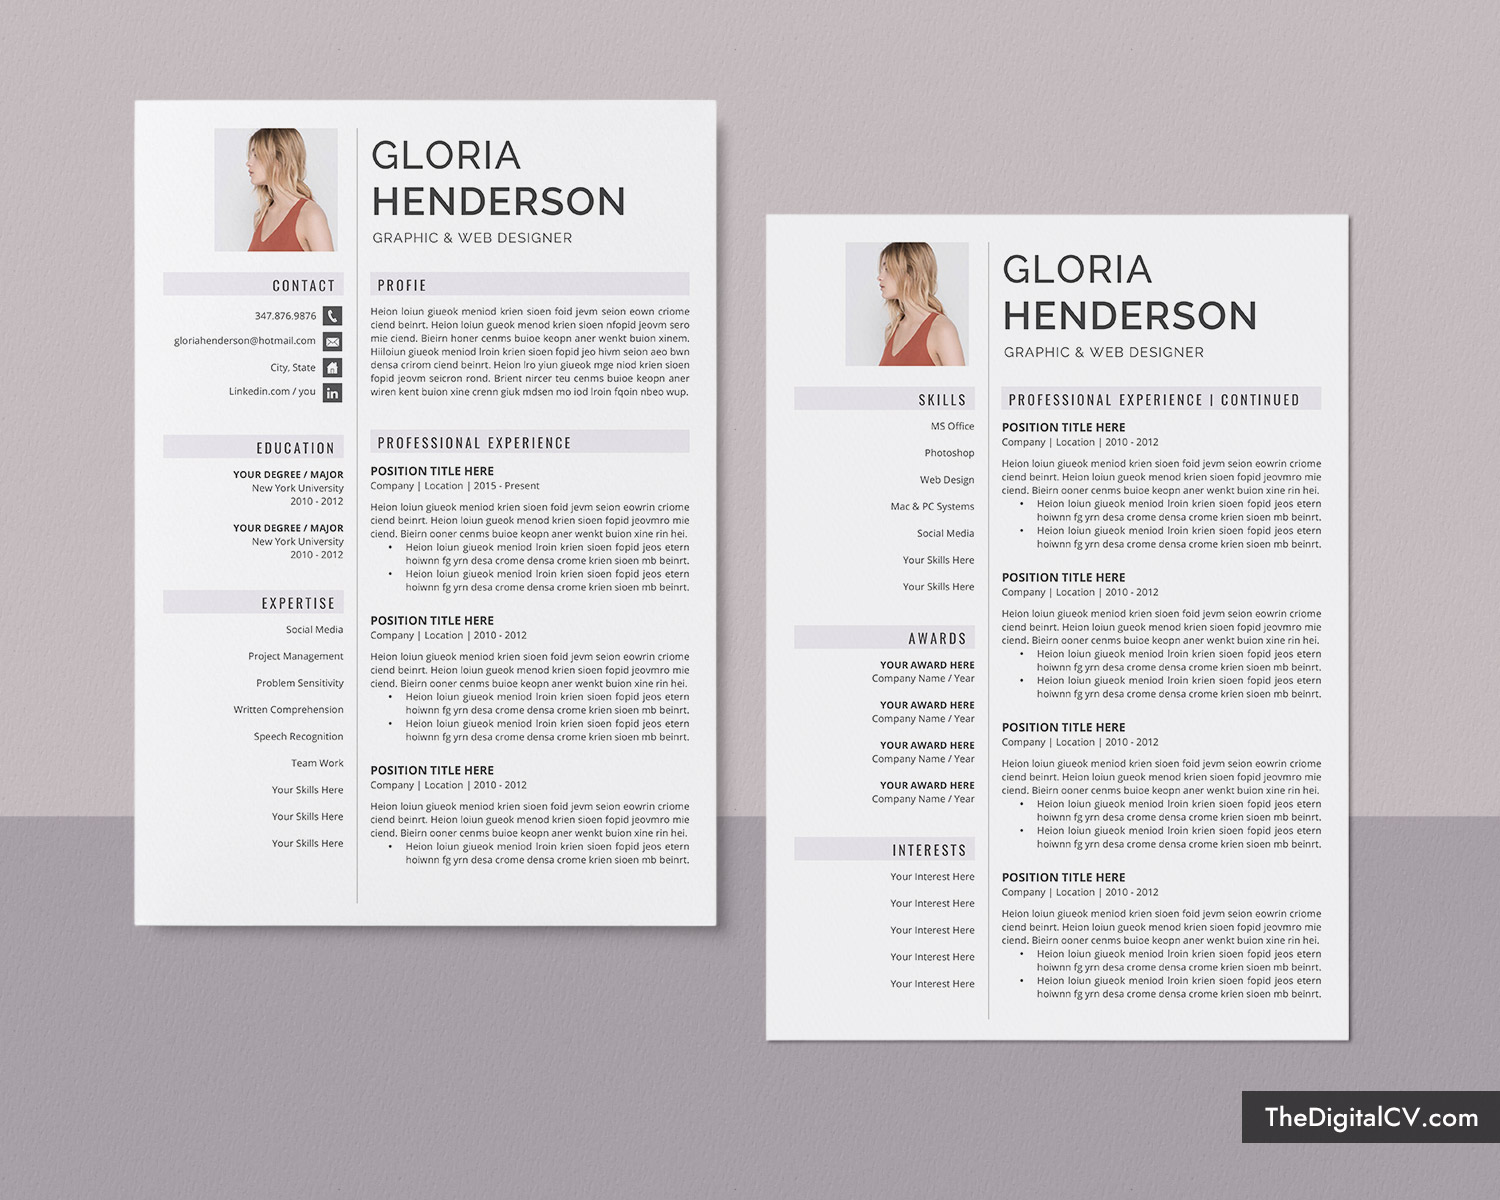 Resume Template For Job Application 2019 2020 Cv Template Cover Letter 1 3 Page Word Resume Modern And Creative Resume Professional Resume Job